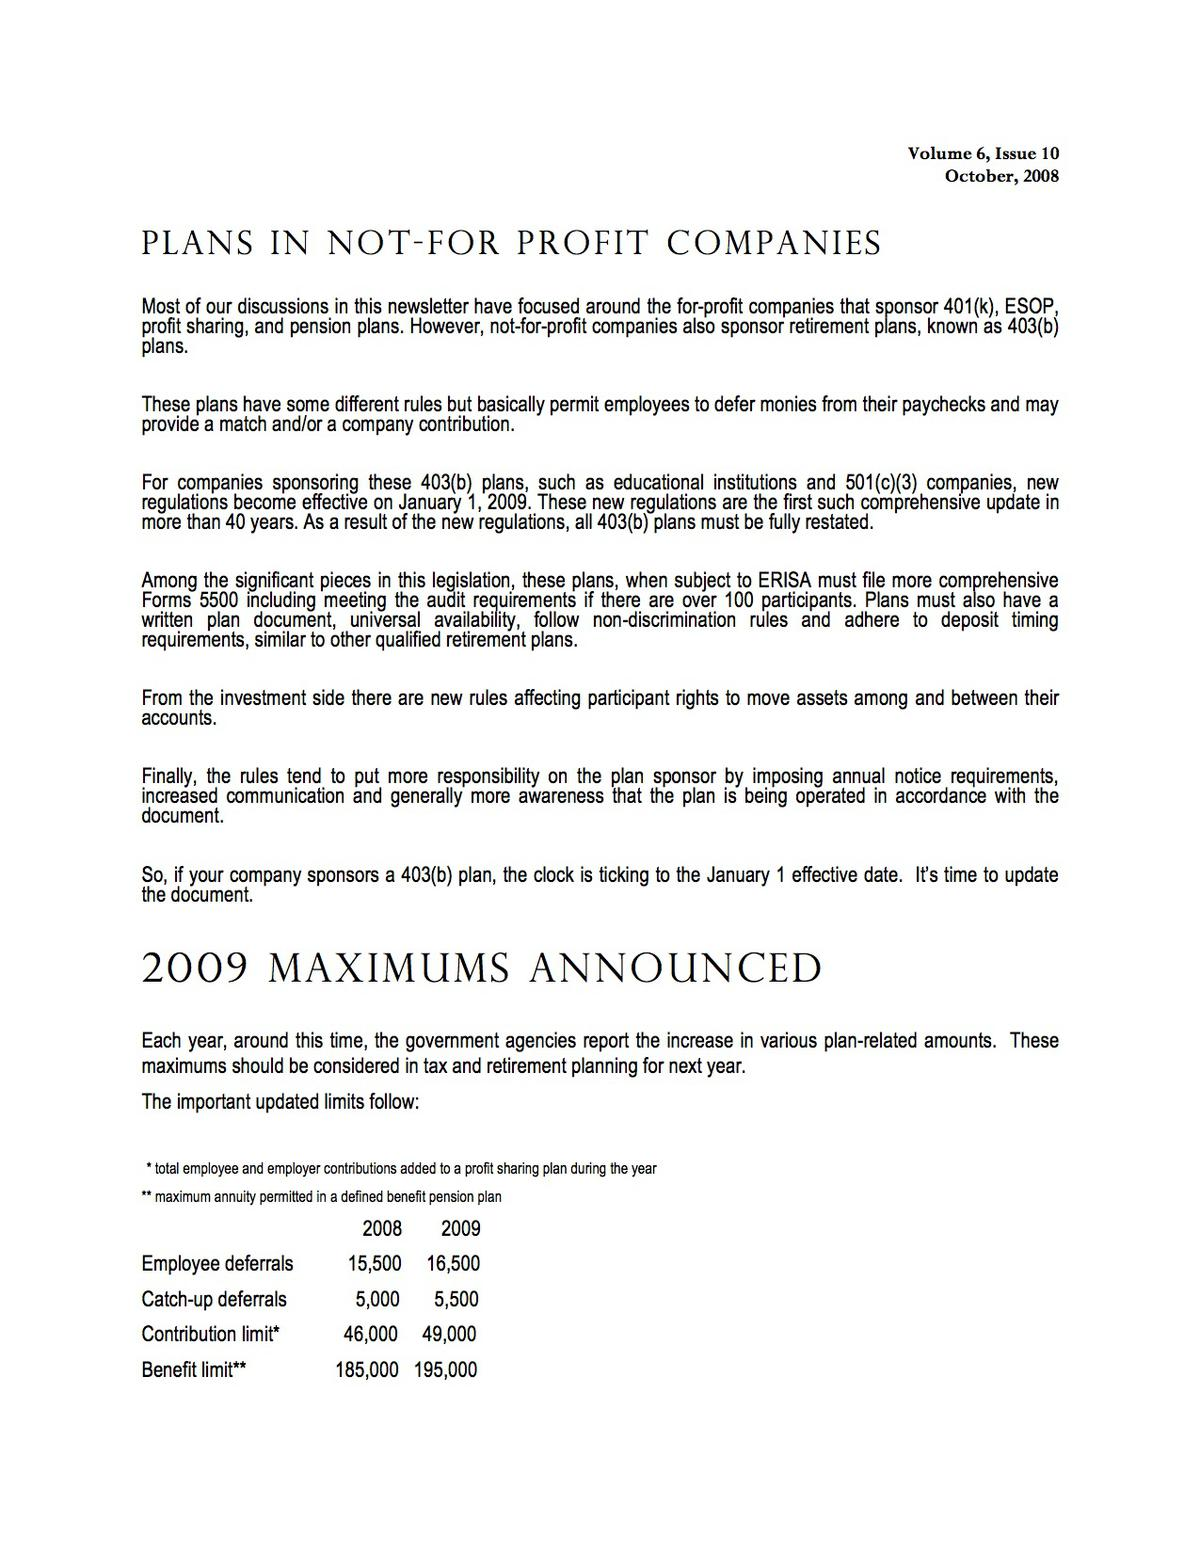 Plans In Not-For-Profit Companies